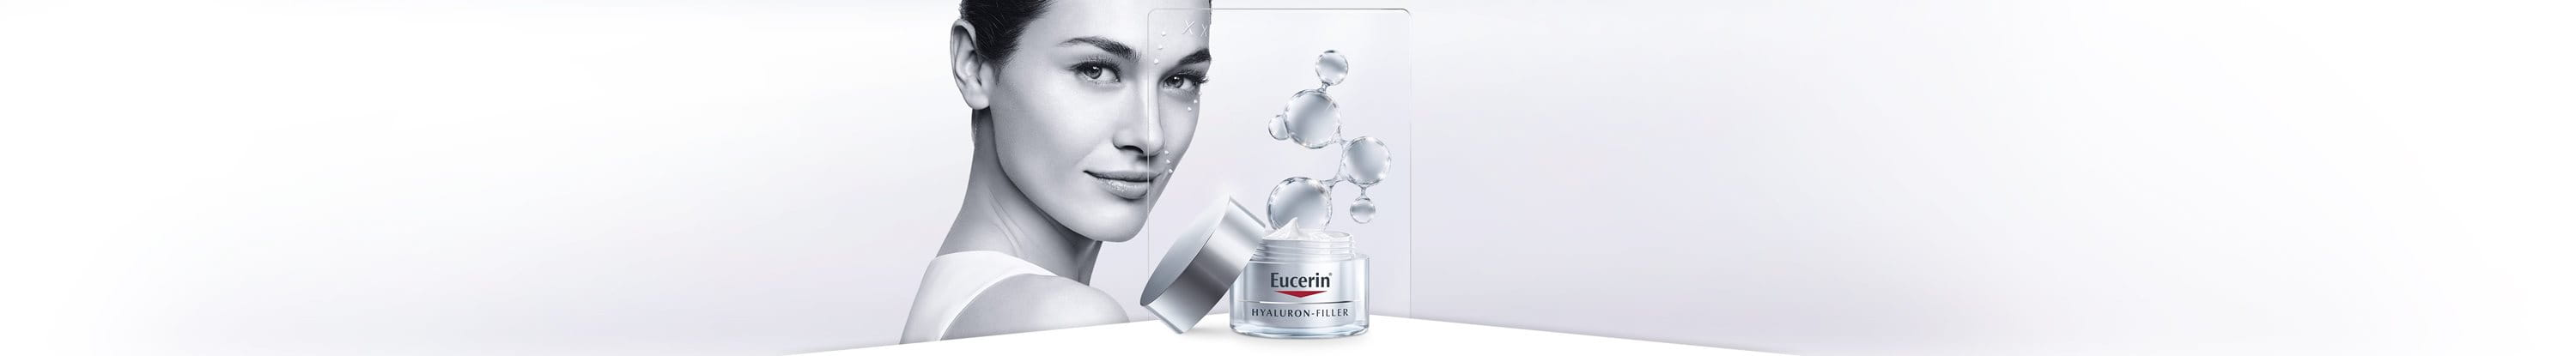 Wrinkle filler with Hyaluronic Acid